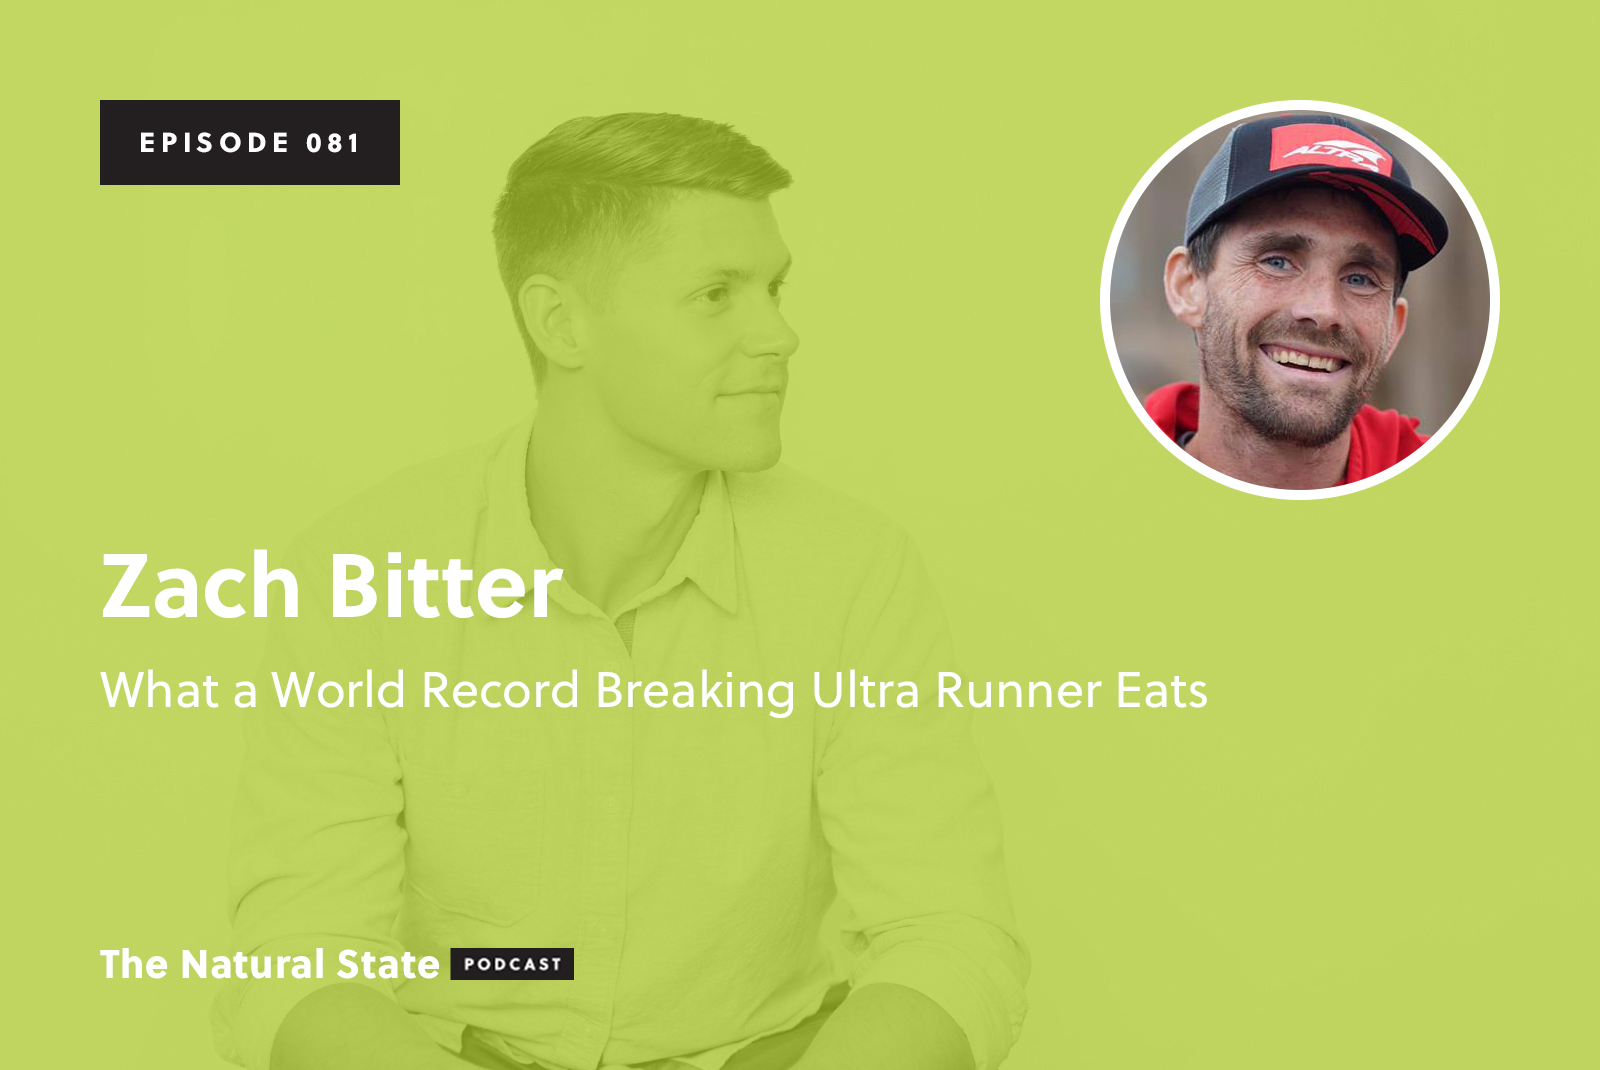 081: Zach Bitter - What a World Record Breaking Ultra Runner Eats